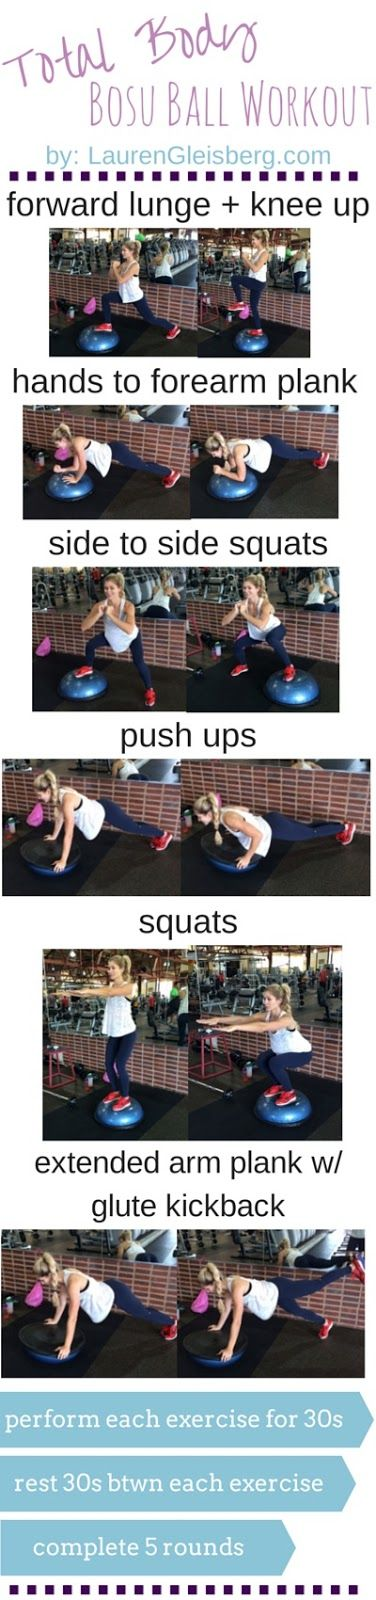 Total Body Bosu Ball Workout | click for full workout guides by Lauren Gleisberg health + fitness blog